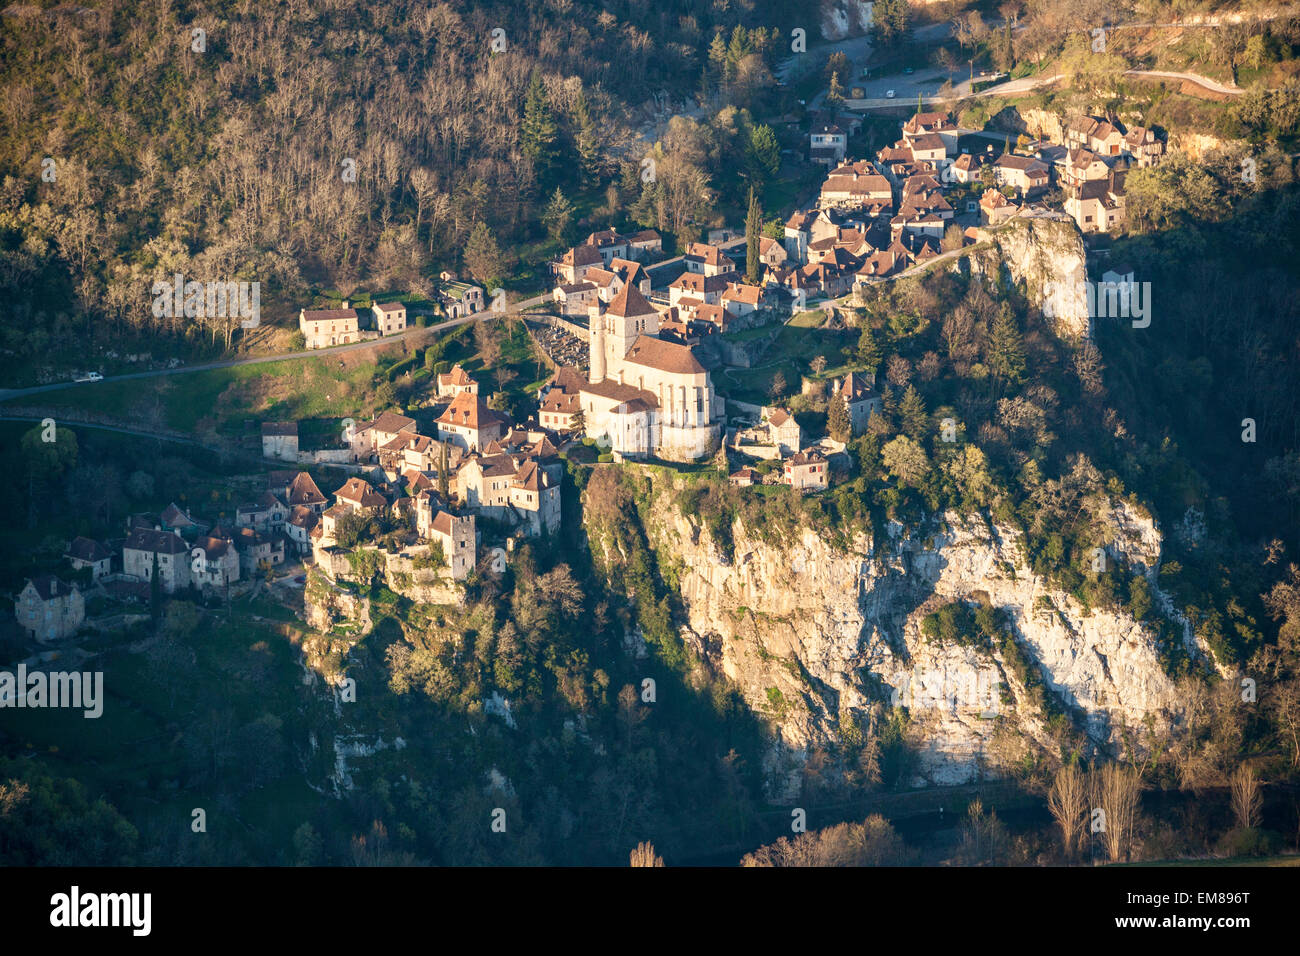 Aerial view of St. Cirq Lapopie in the Lot Valley in France - Stock Image